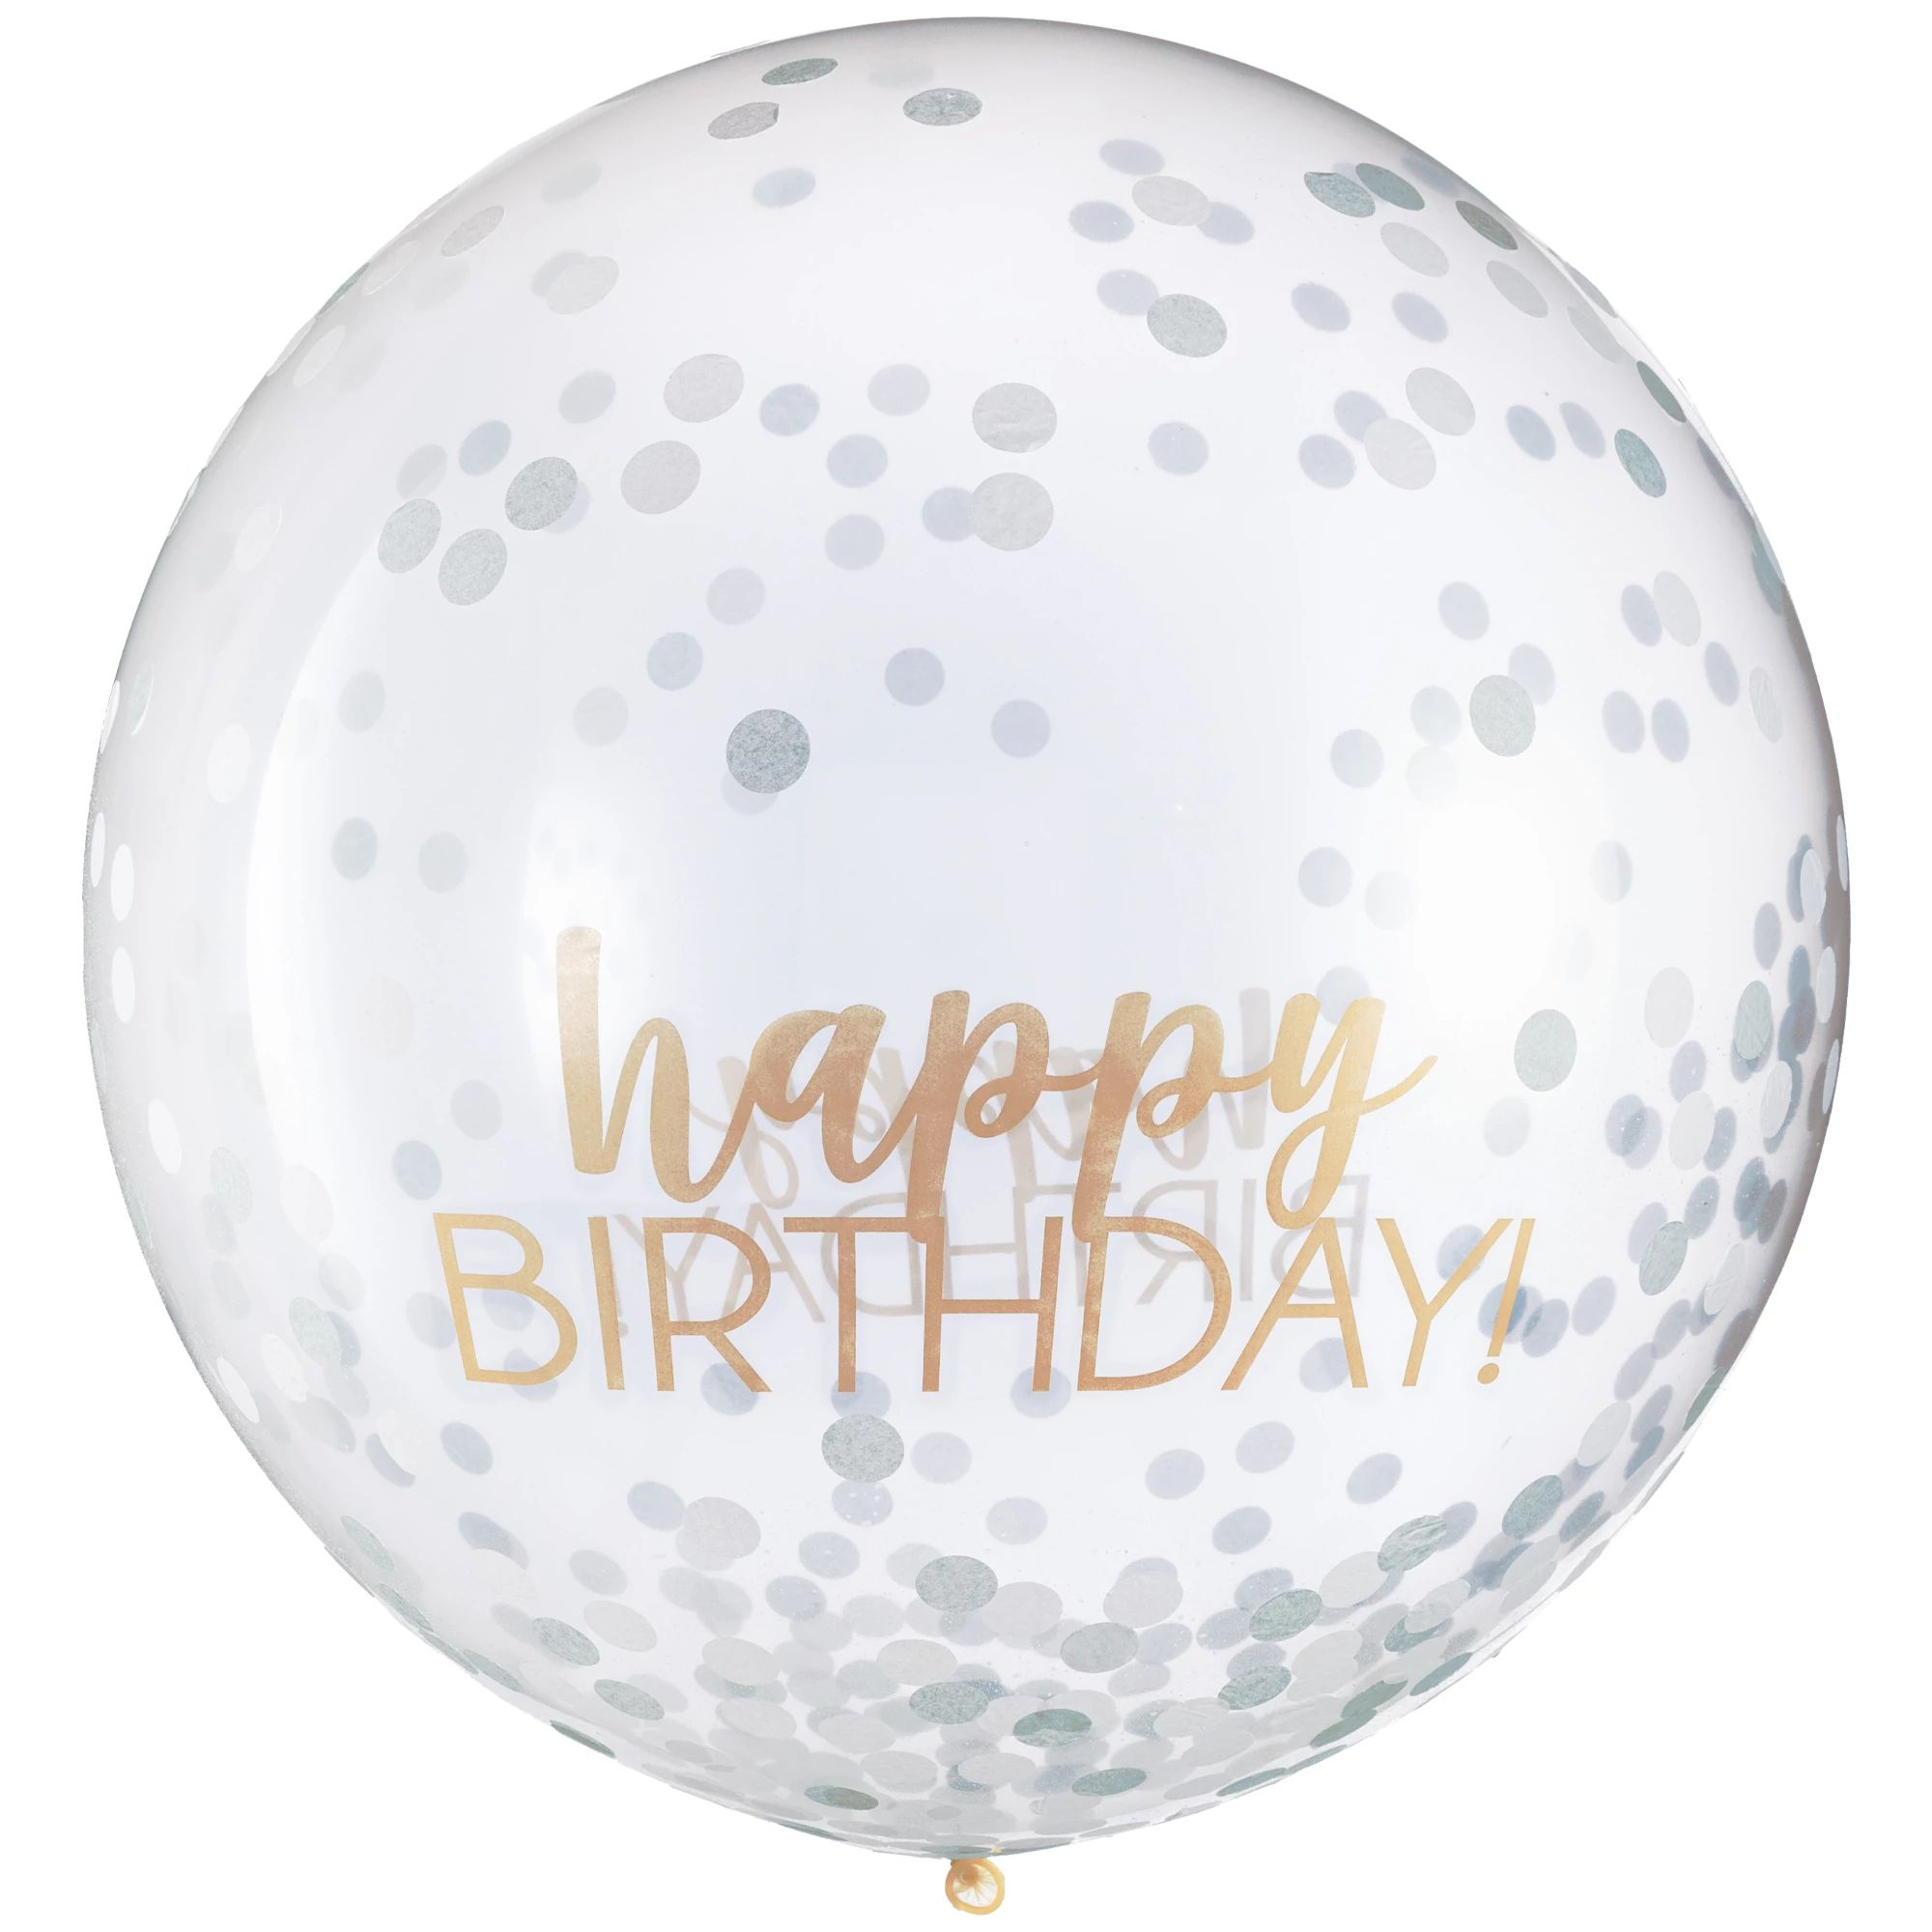 Bday Access S&G Latex Balloon w/Confetti